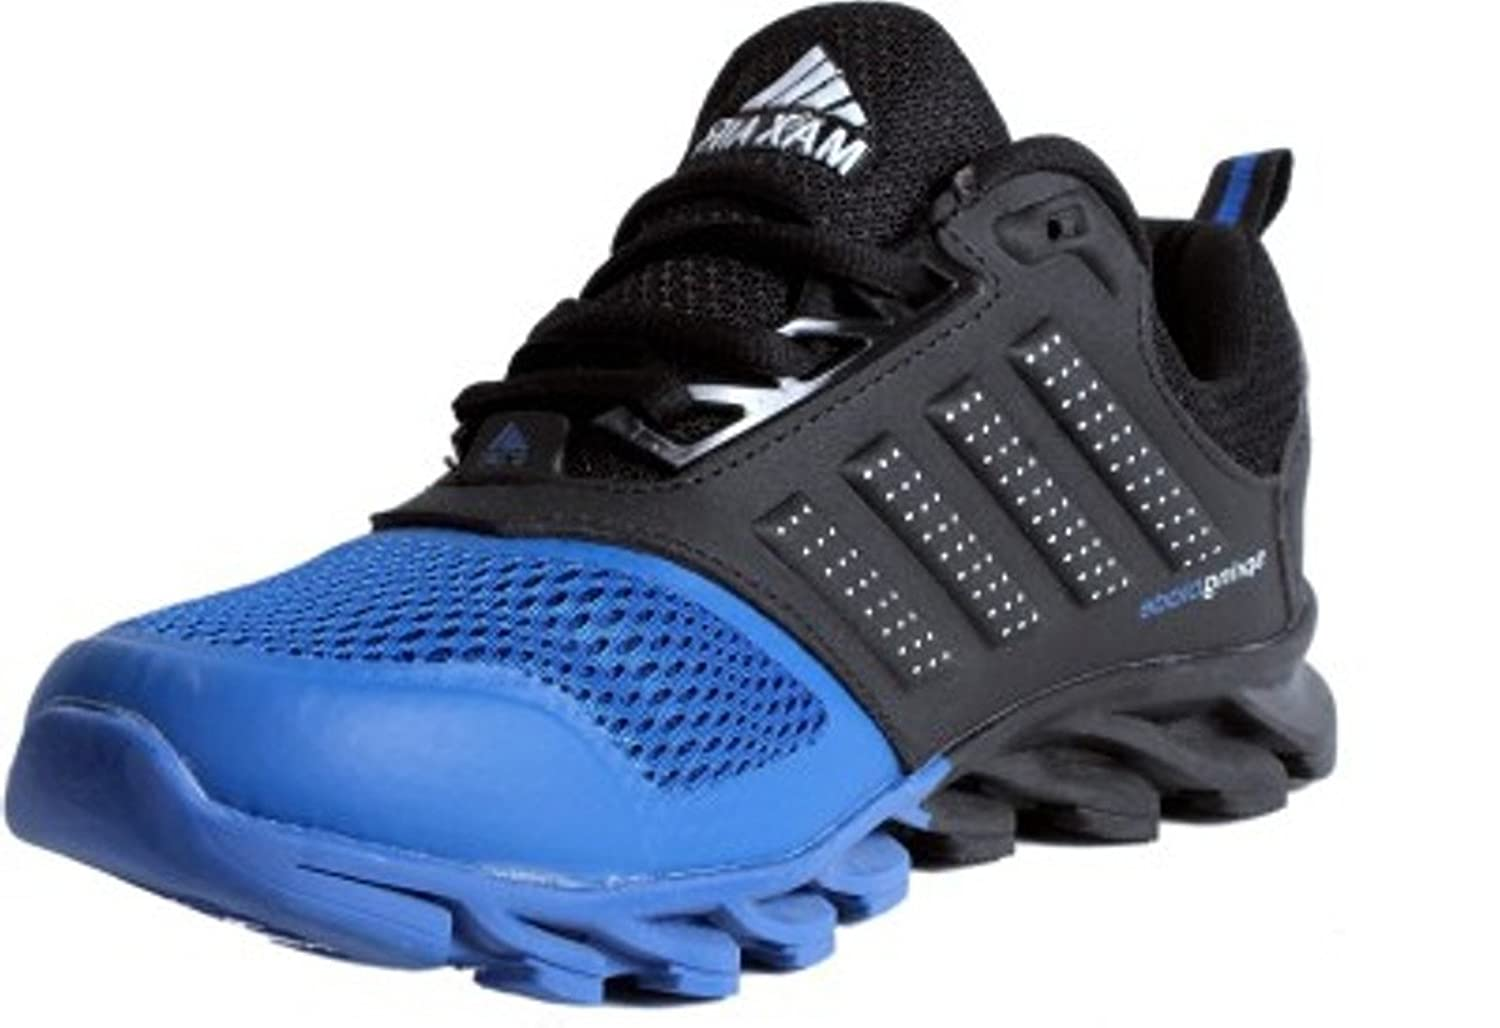 wholesale dealer 30a12 4ba4e MAX AIR SPORTS SHOES SPRING BLADE Cheap And Vouge Adidas Springblade Ignite  Red Black Running ...